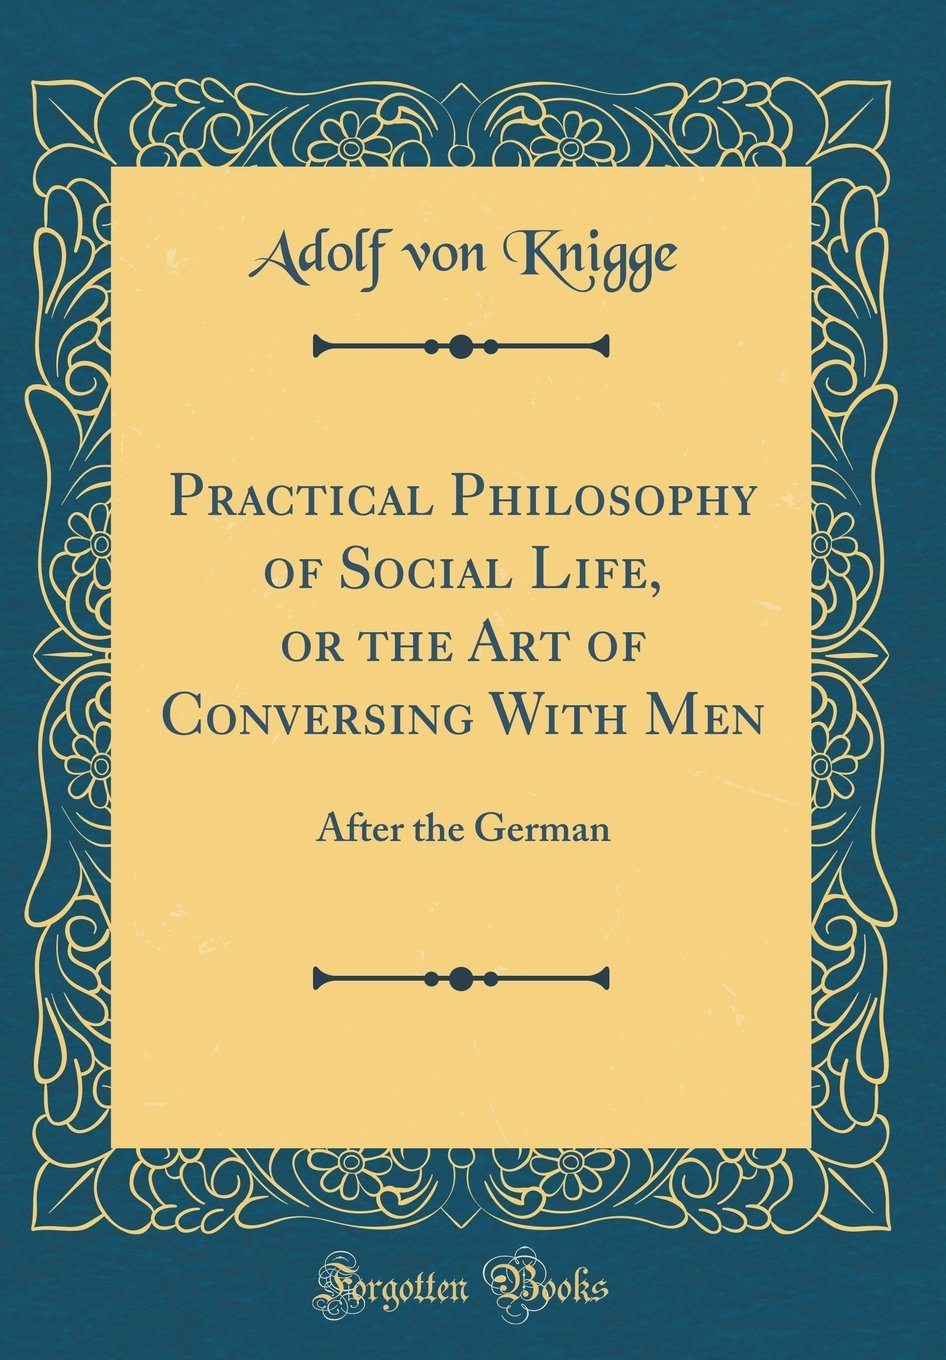 Practical Philosophy of Social Life, or the Art of Conversing with Men: After the German (Classic Reprint) PDF